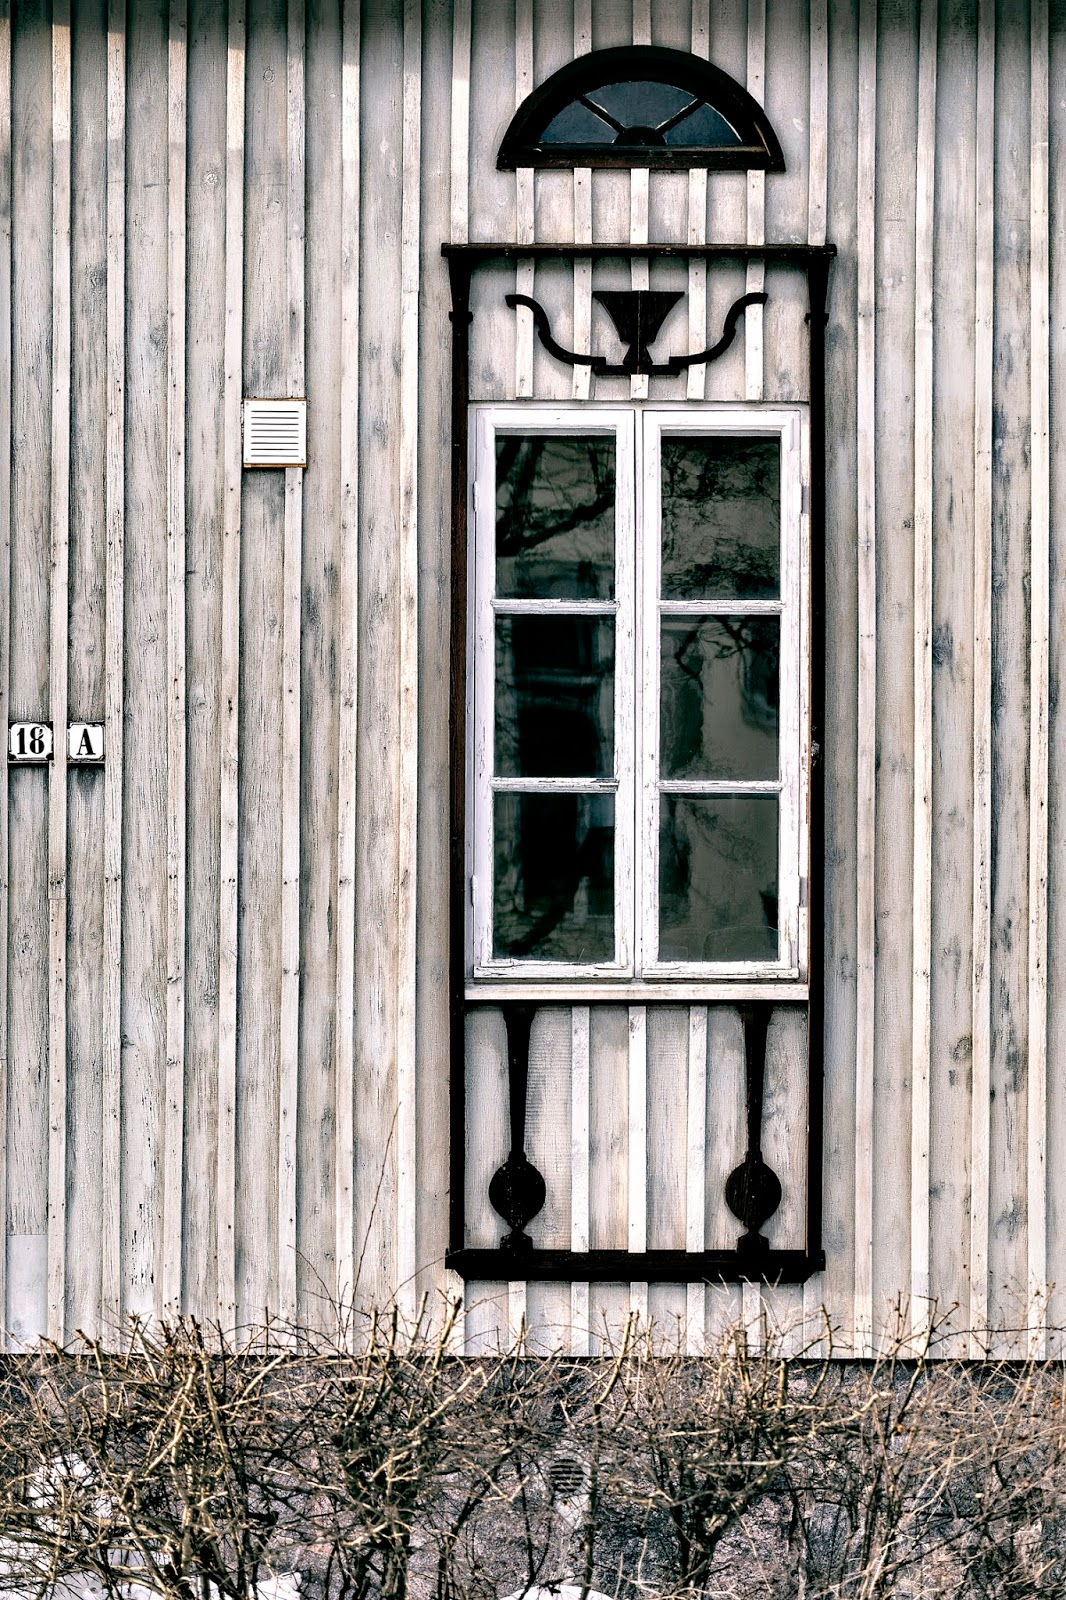 Suomi, Finland, finlandphotolovers, photography, visualaddict, valokuvaaja, Frida Steiner, visualaddictfrida, outdoors, old buildings, arkkitehtuuri, architecture, window, ikkuna